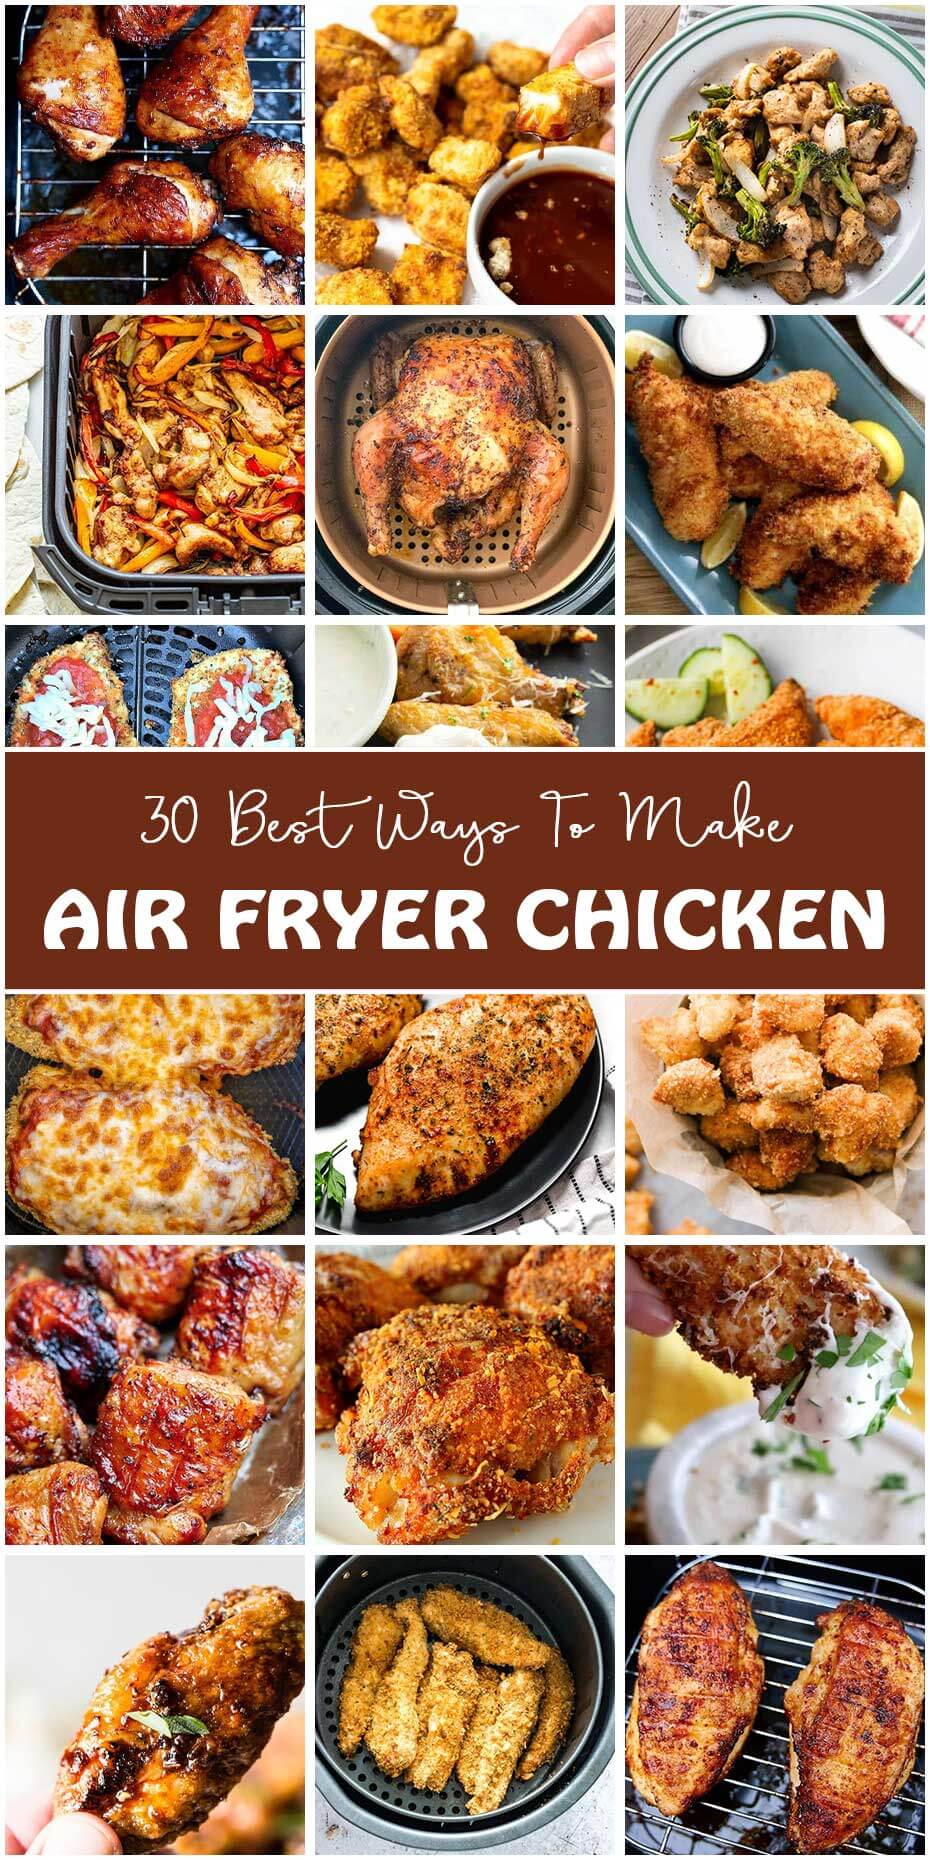 25 Air Fryer Chicken Dishes You Should Never Miss